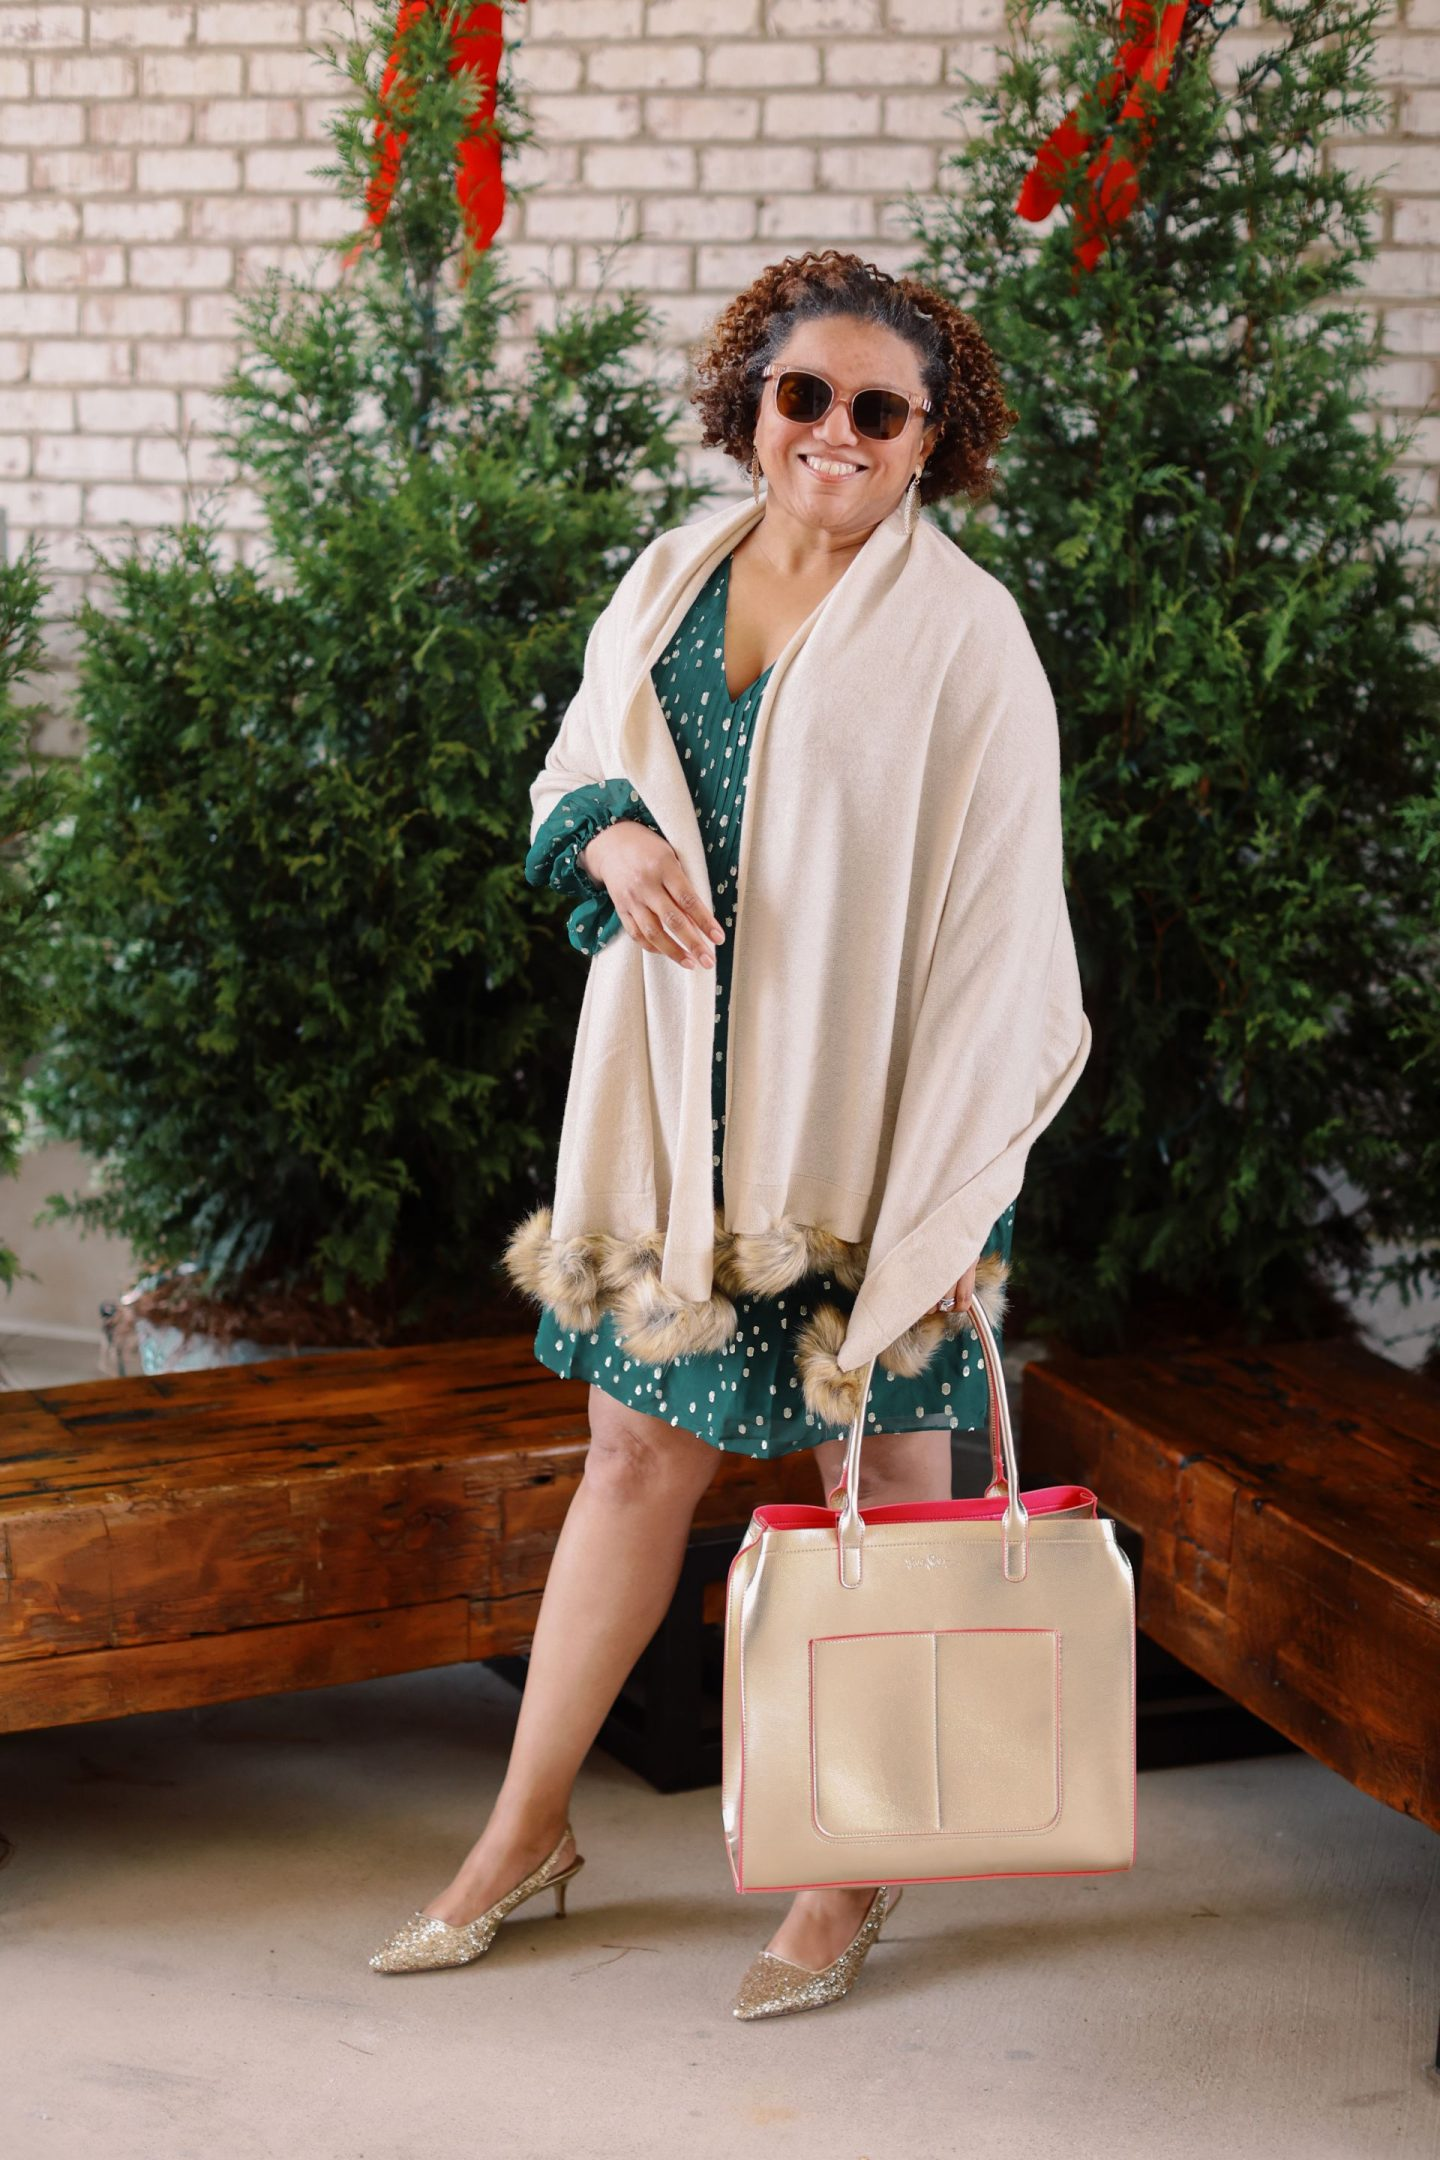 Friday Faves by popular Kentucky fashion blog, Really Rynetta: image of a woman standing in front of some pine trees and wearing a Lilly Pulitzer Cleme Silk Dress, Lilly Pulitzer Shaina Slingback Glitter Heel, wrap with fur pom poms, Lilly Pulitzer Lilly Lace Statement Earrings, and holding a gold tote bag.